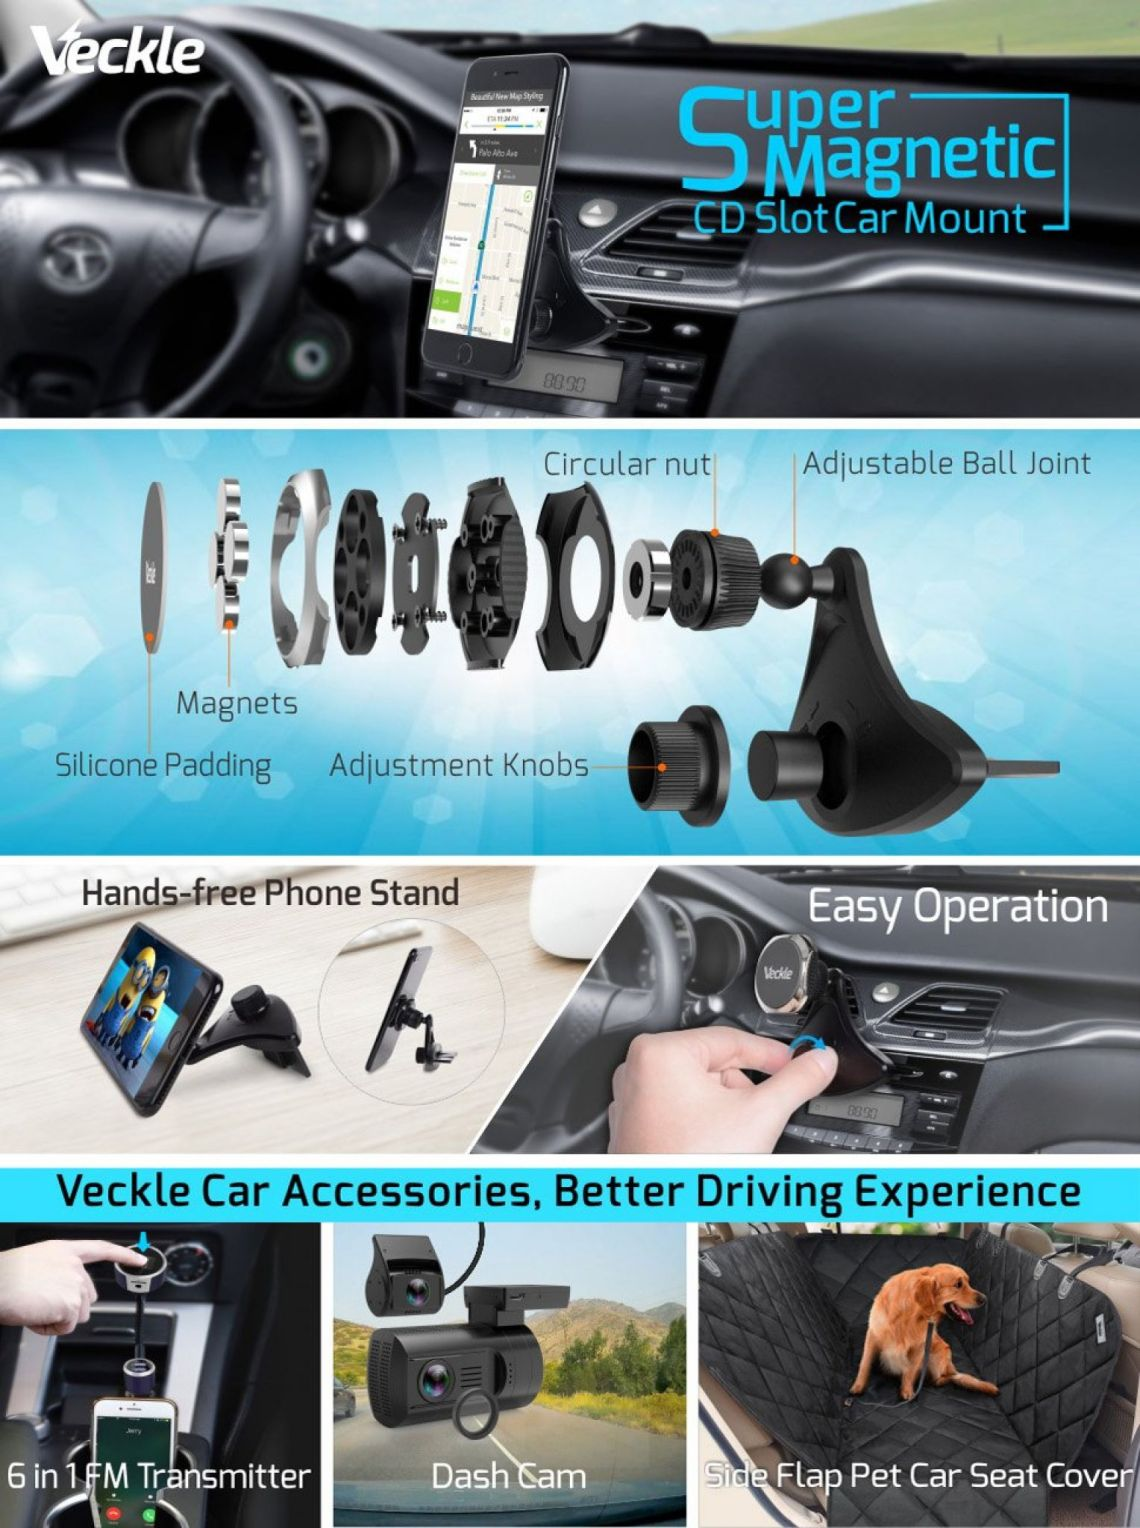 Amazon.com: Car Phone Holder, Veckle CD Slot Magnetic Phone Car Mount Holder Strong Magnet Phone Holder for Car Universal Cradle for Smartphone iPhone 8 7 6S 6 Plus X Samsung Galaxy S8 S7 Edge Note 8 5 GPS, Black: Cell Phones & Accessories